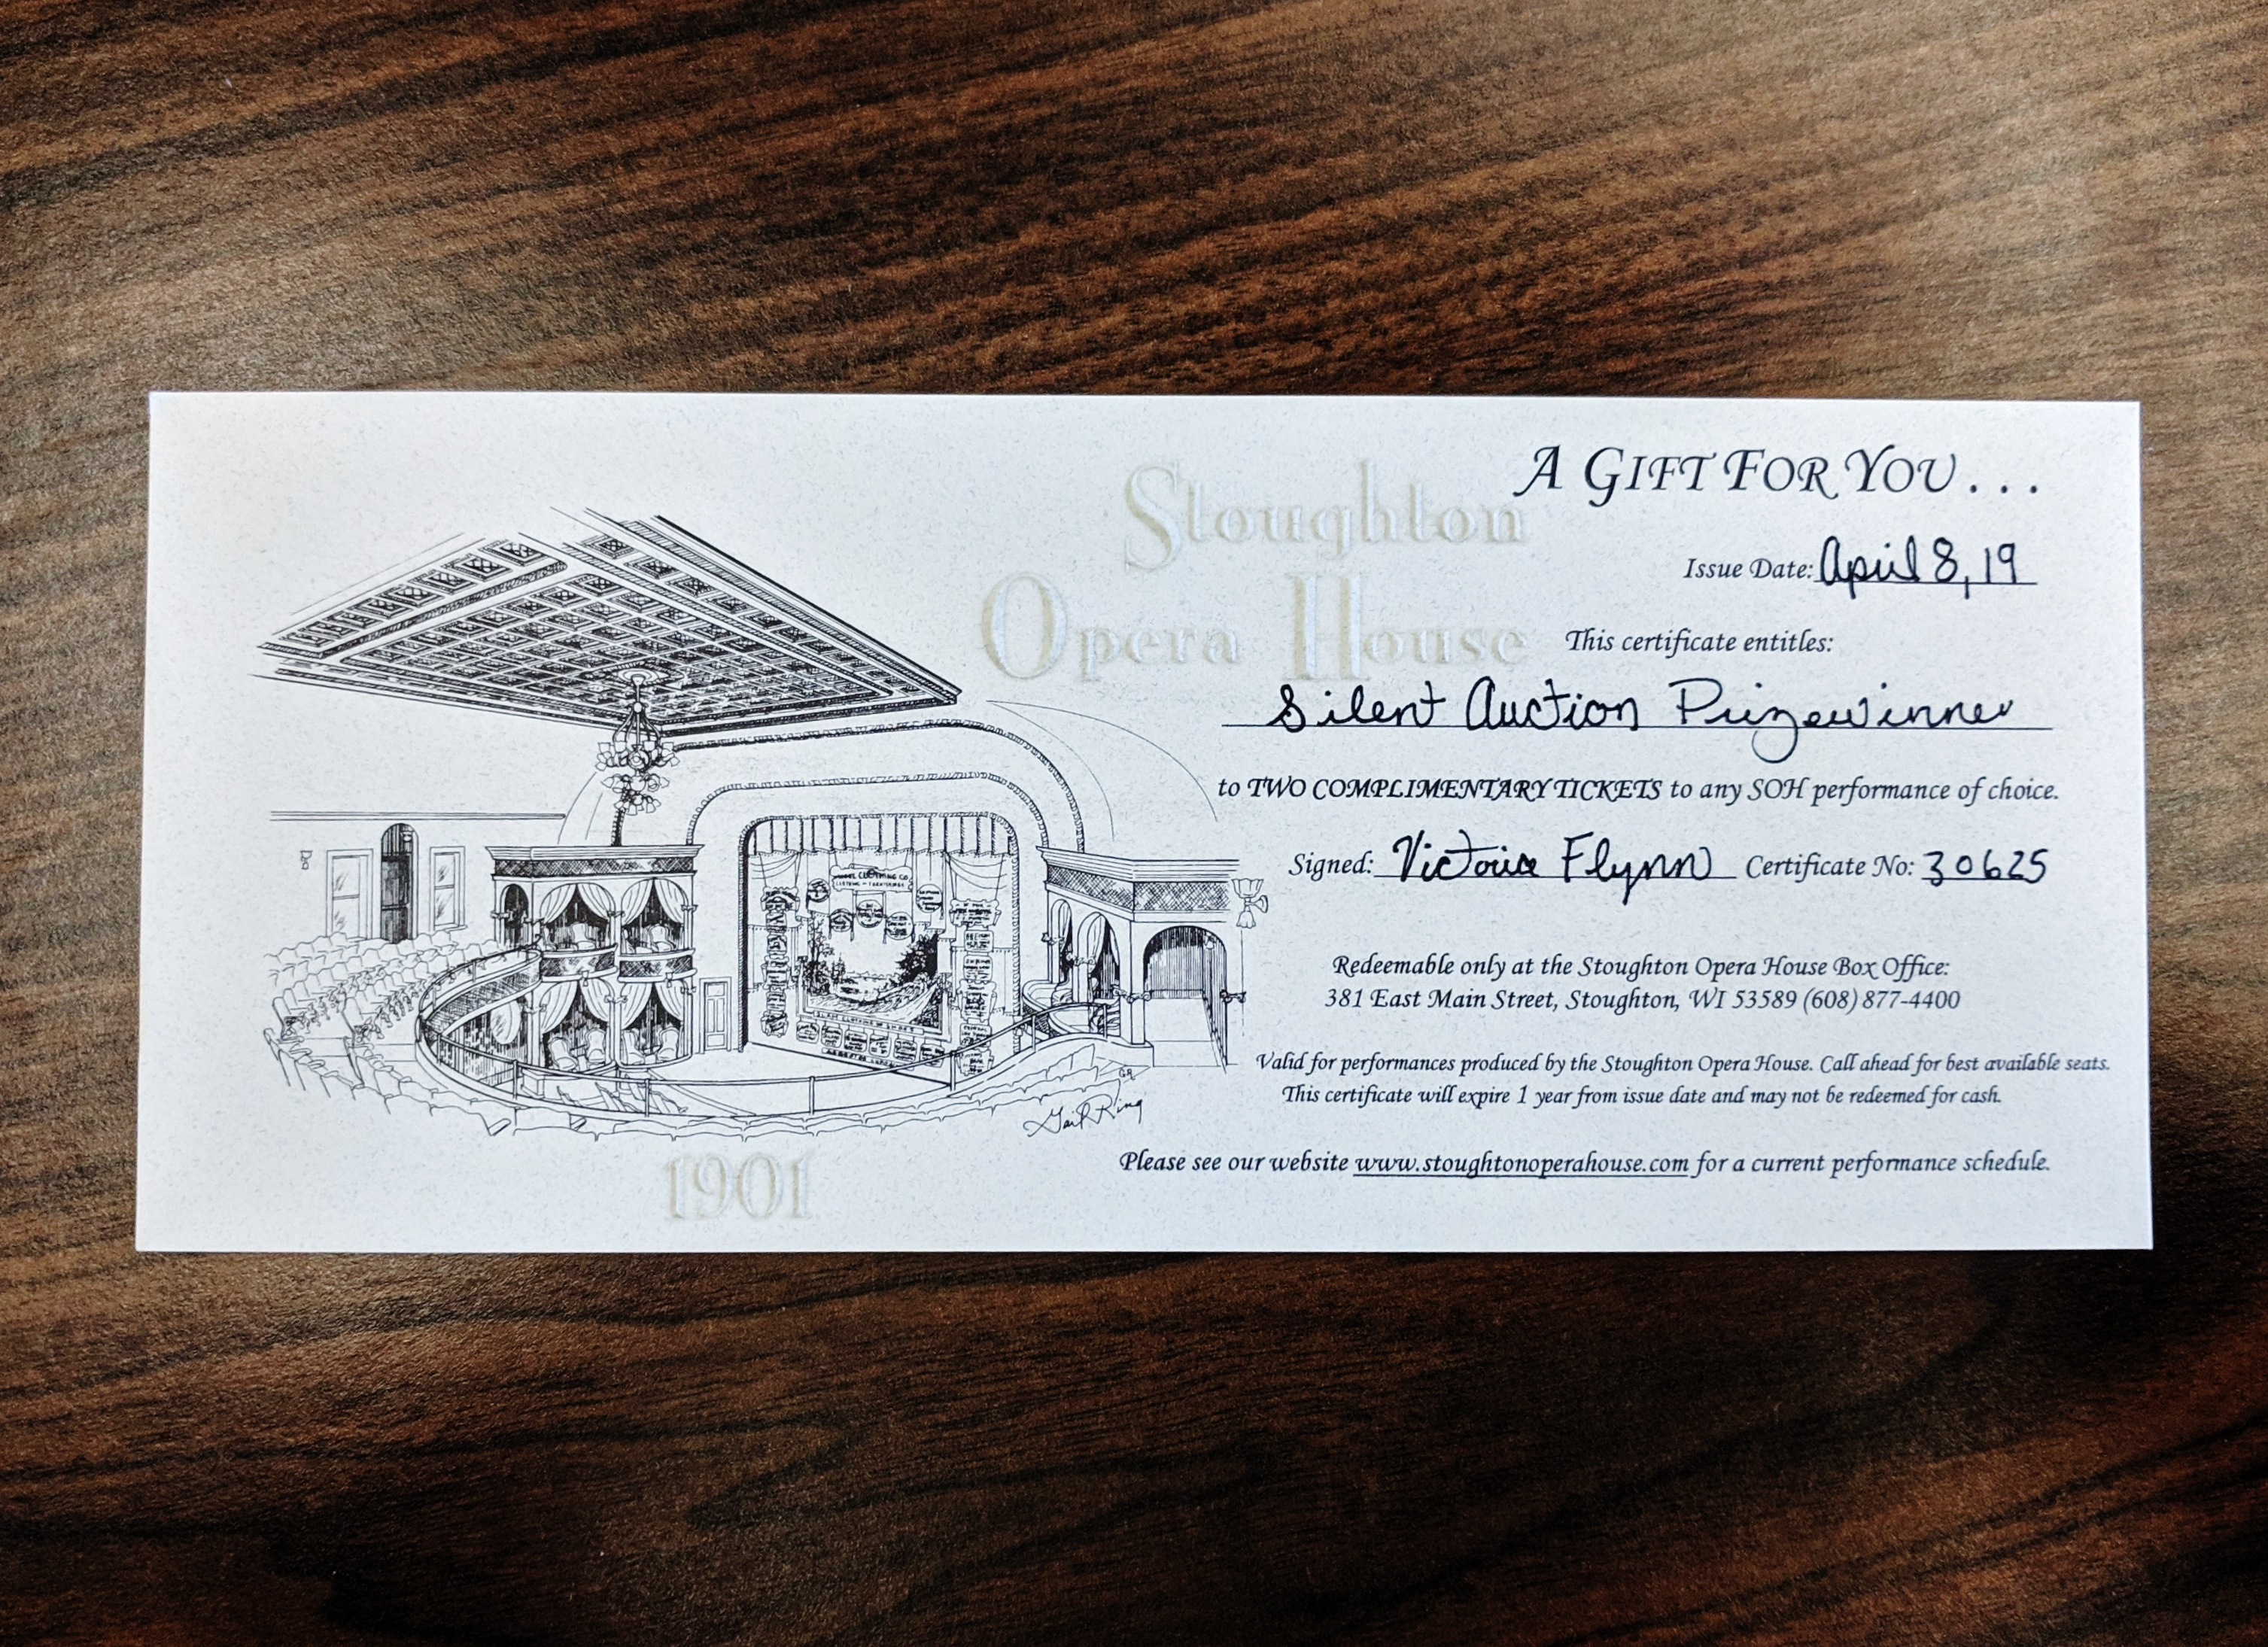 Gift Certificate for Two Tickets to the Stoughton Opera House